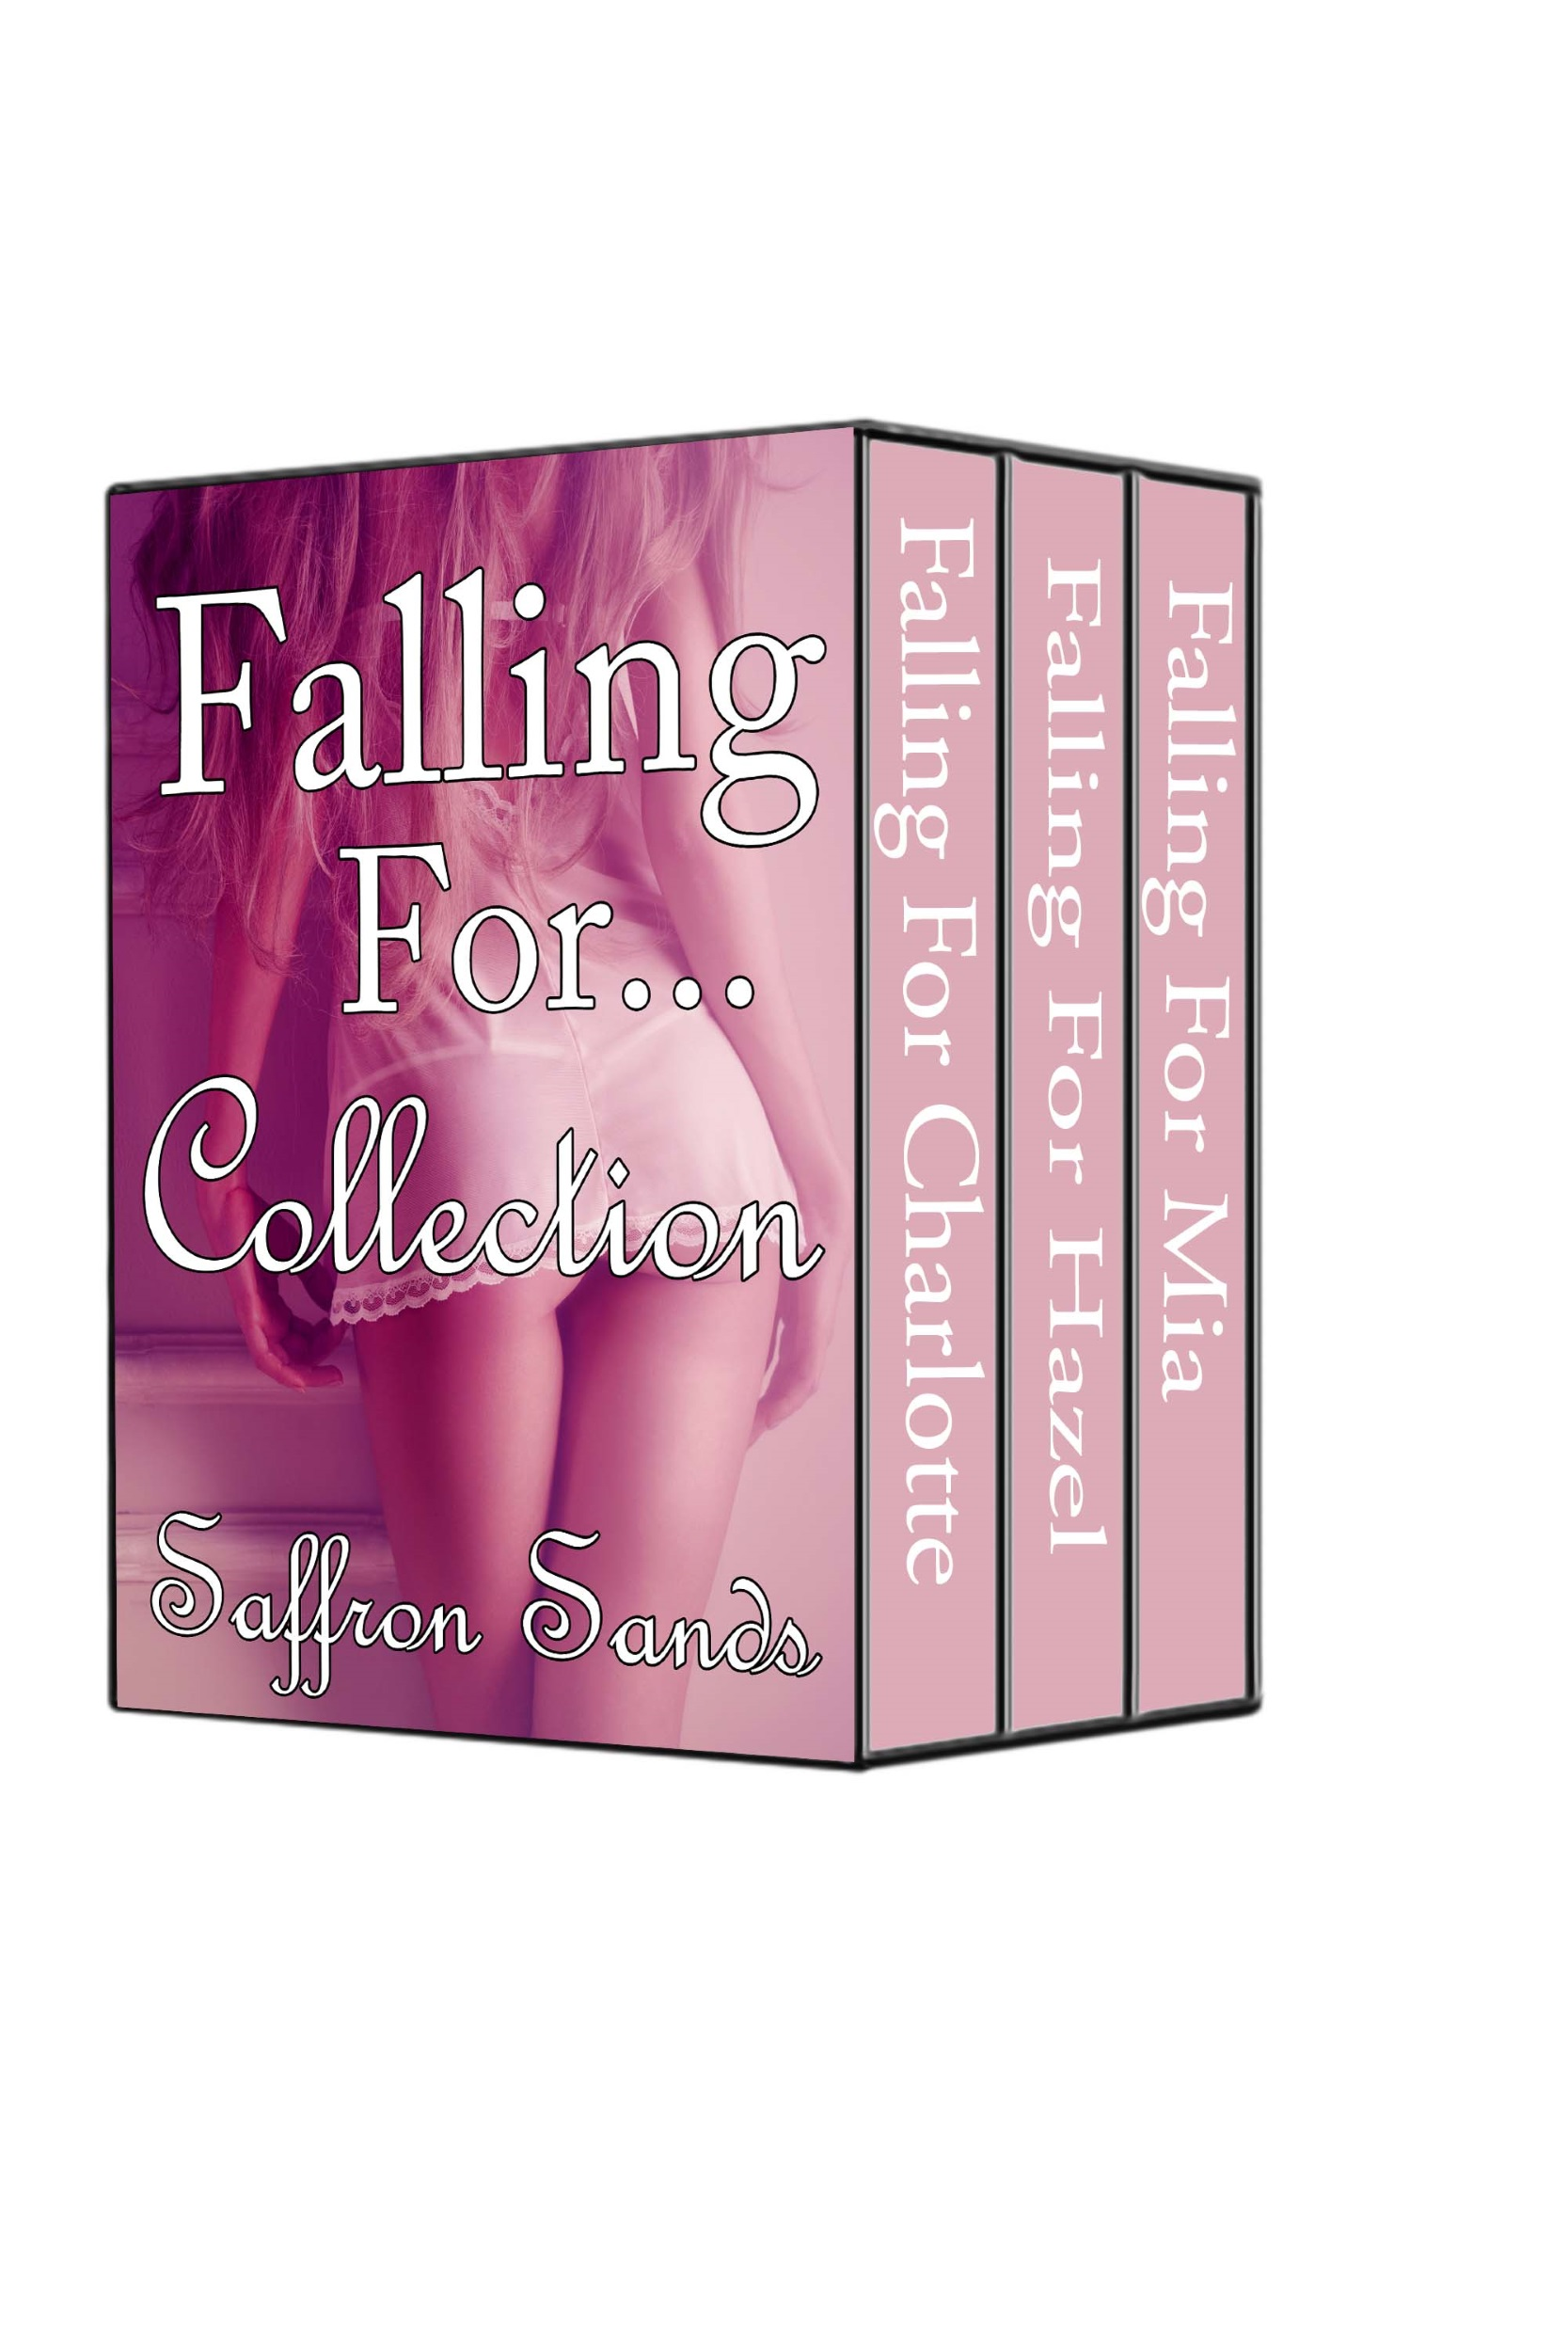 Falling For Collection